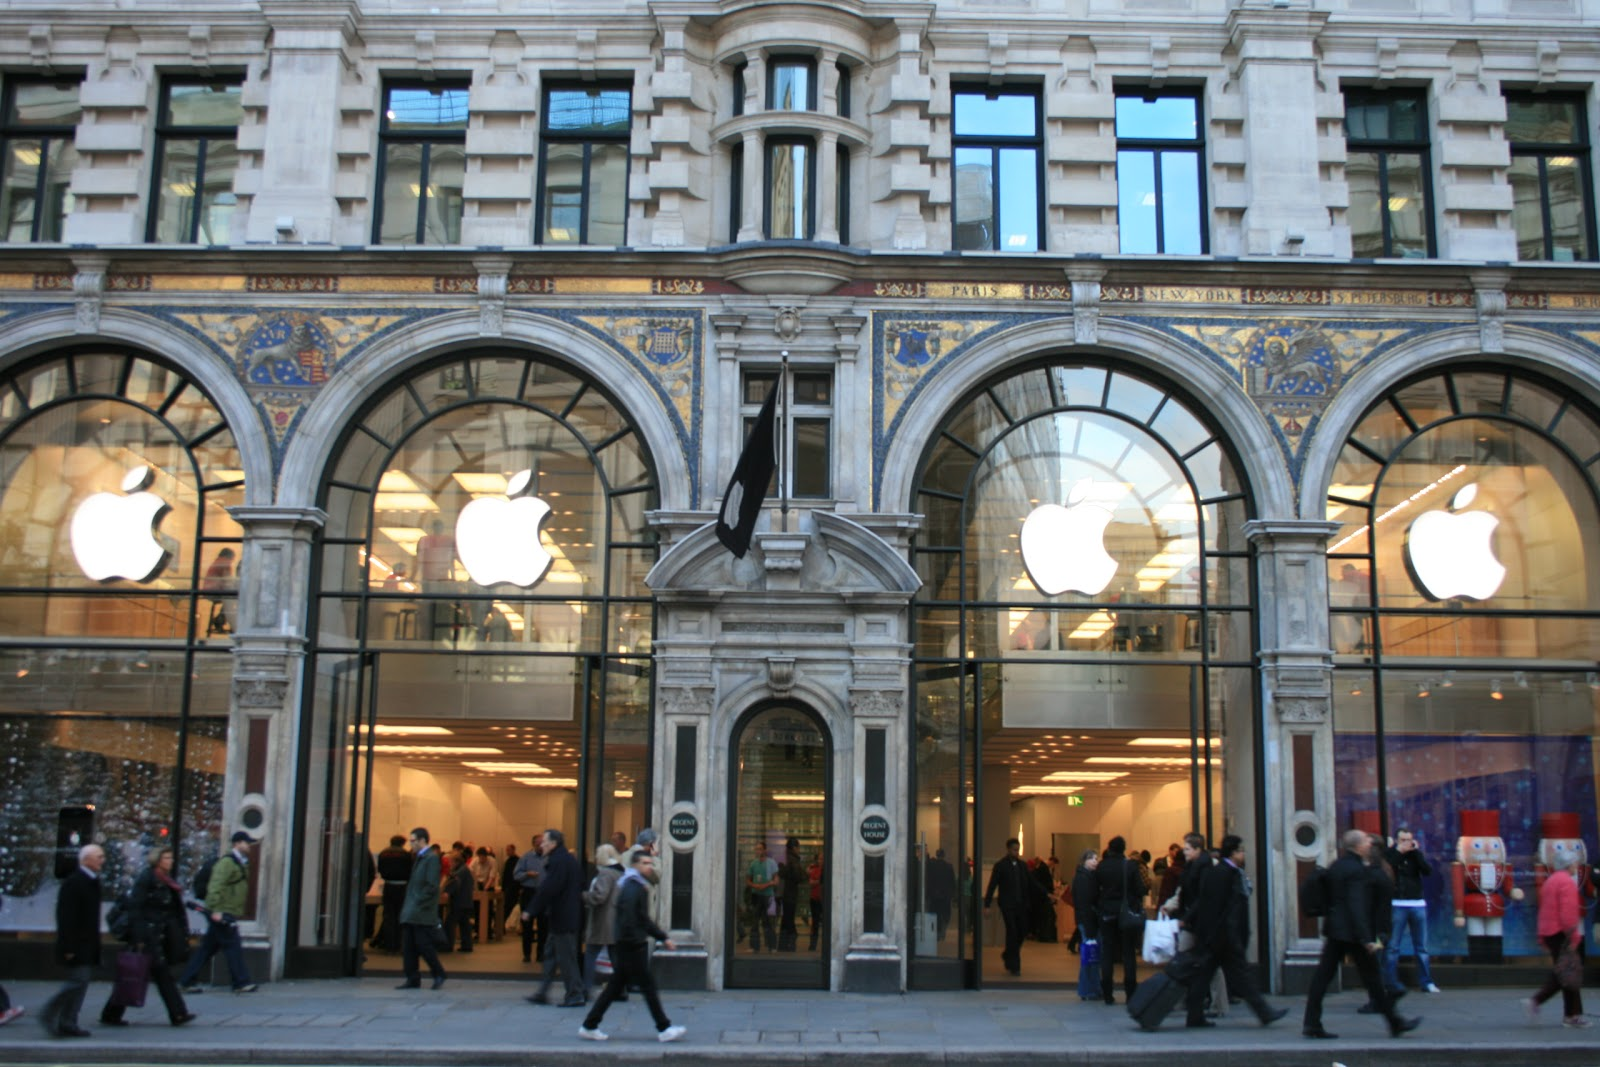 Fresh eyes on London  November 2007 This stunning building in Regent Street is home of the apple store   Zillions buying the new iphone at present